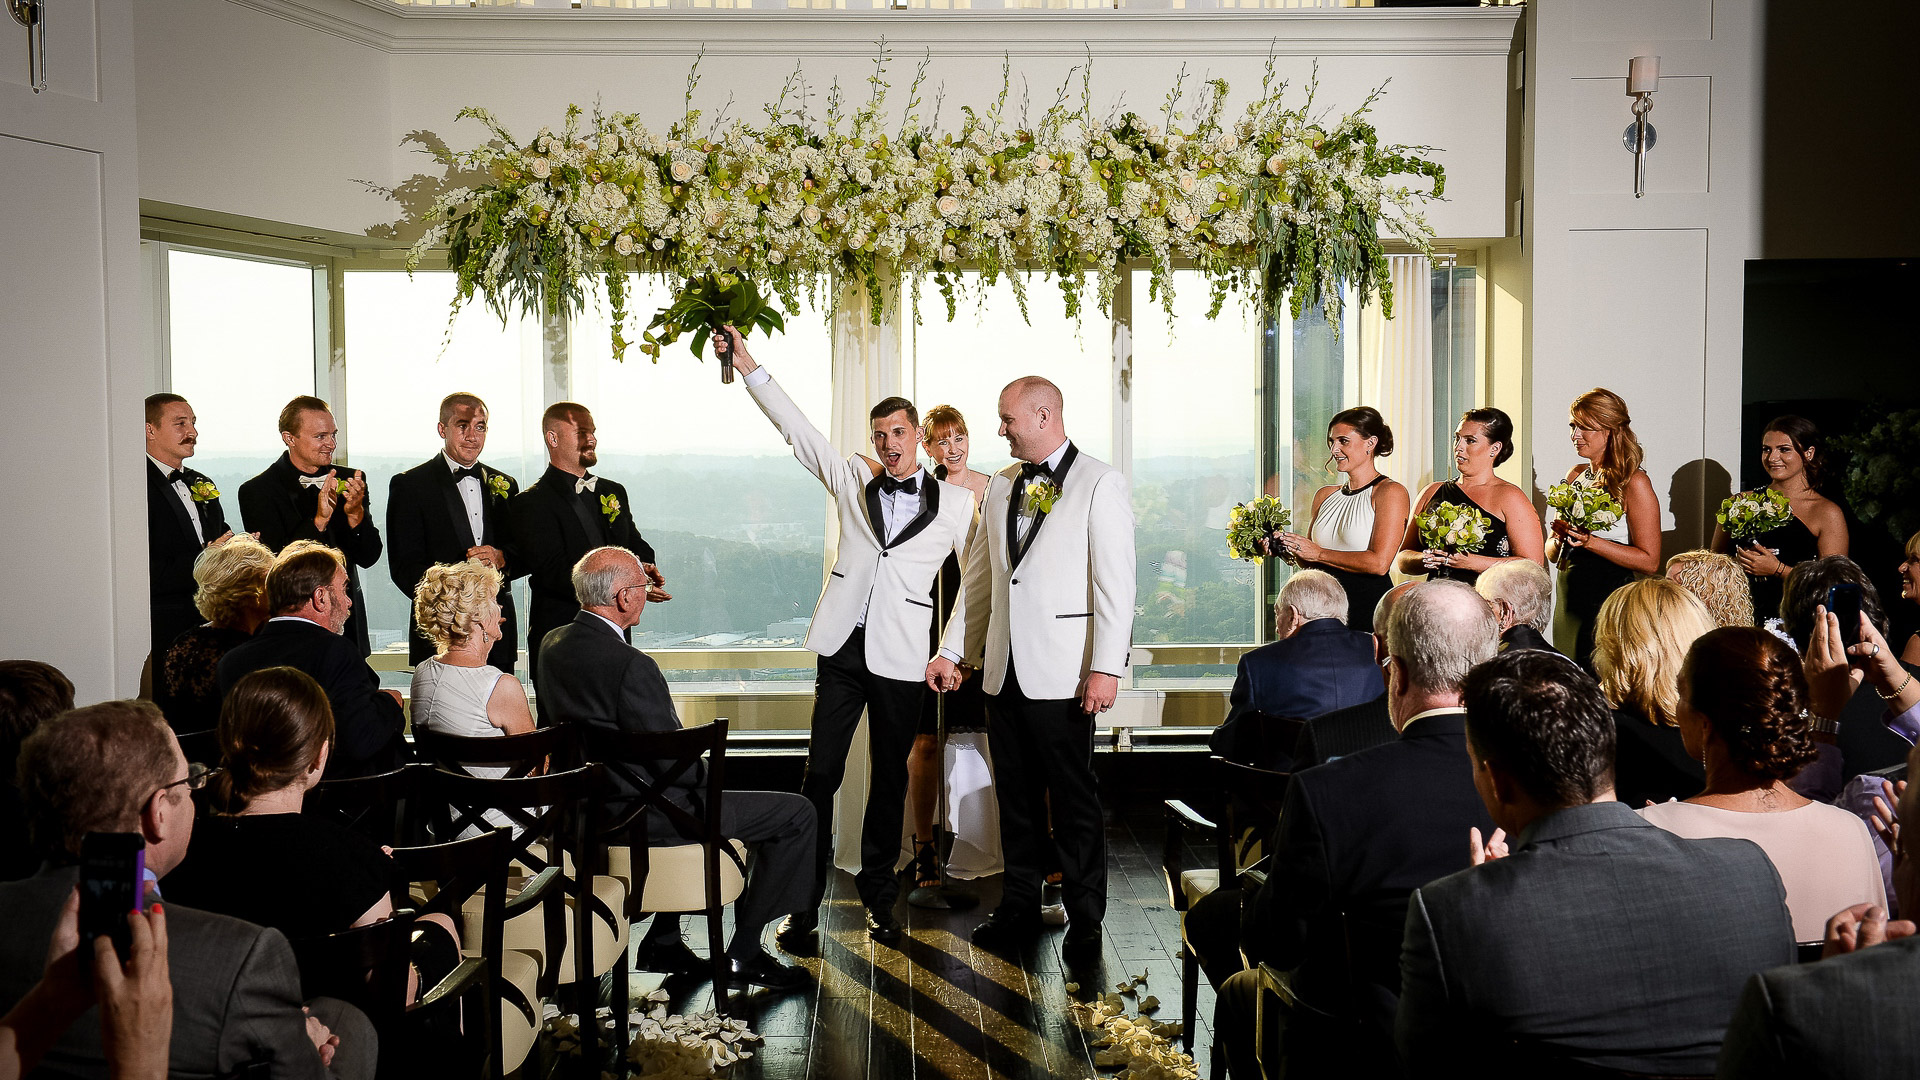 Ritz Carlton White Plains 42 restaurant same sex wedding ceremony wth Hudson Valley views